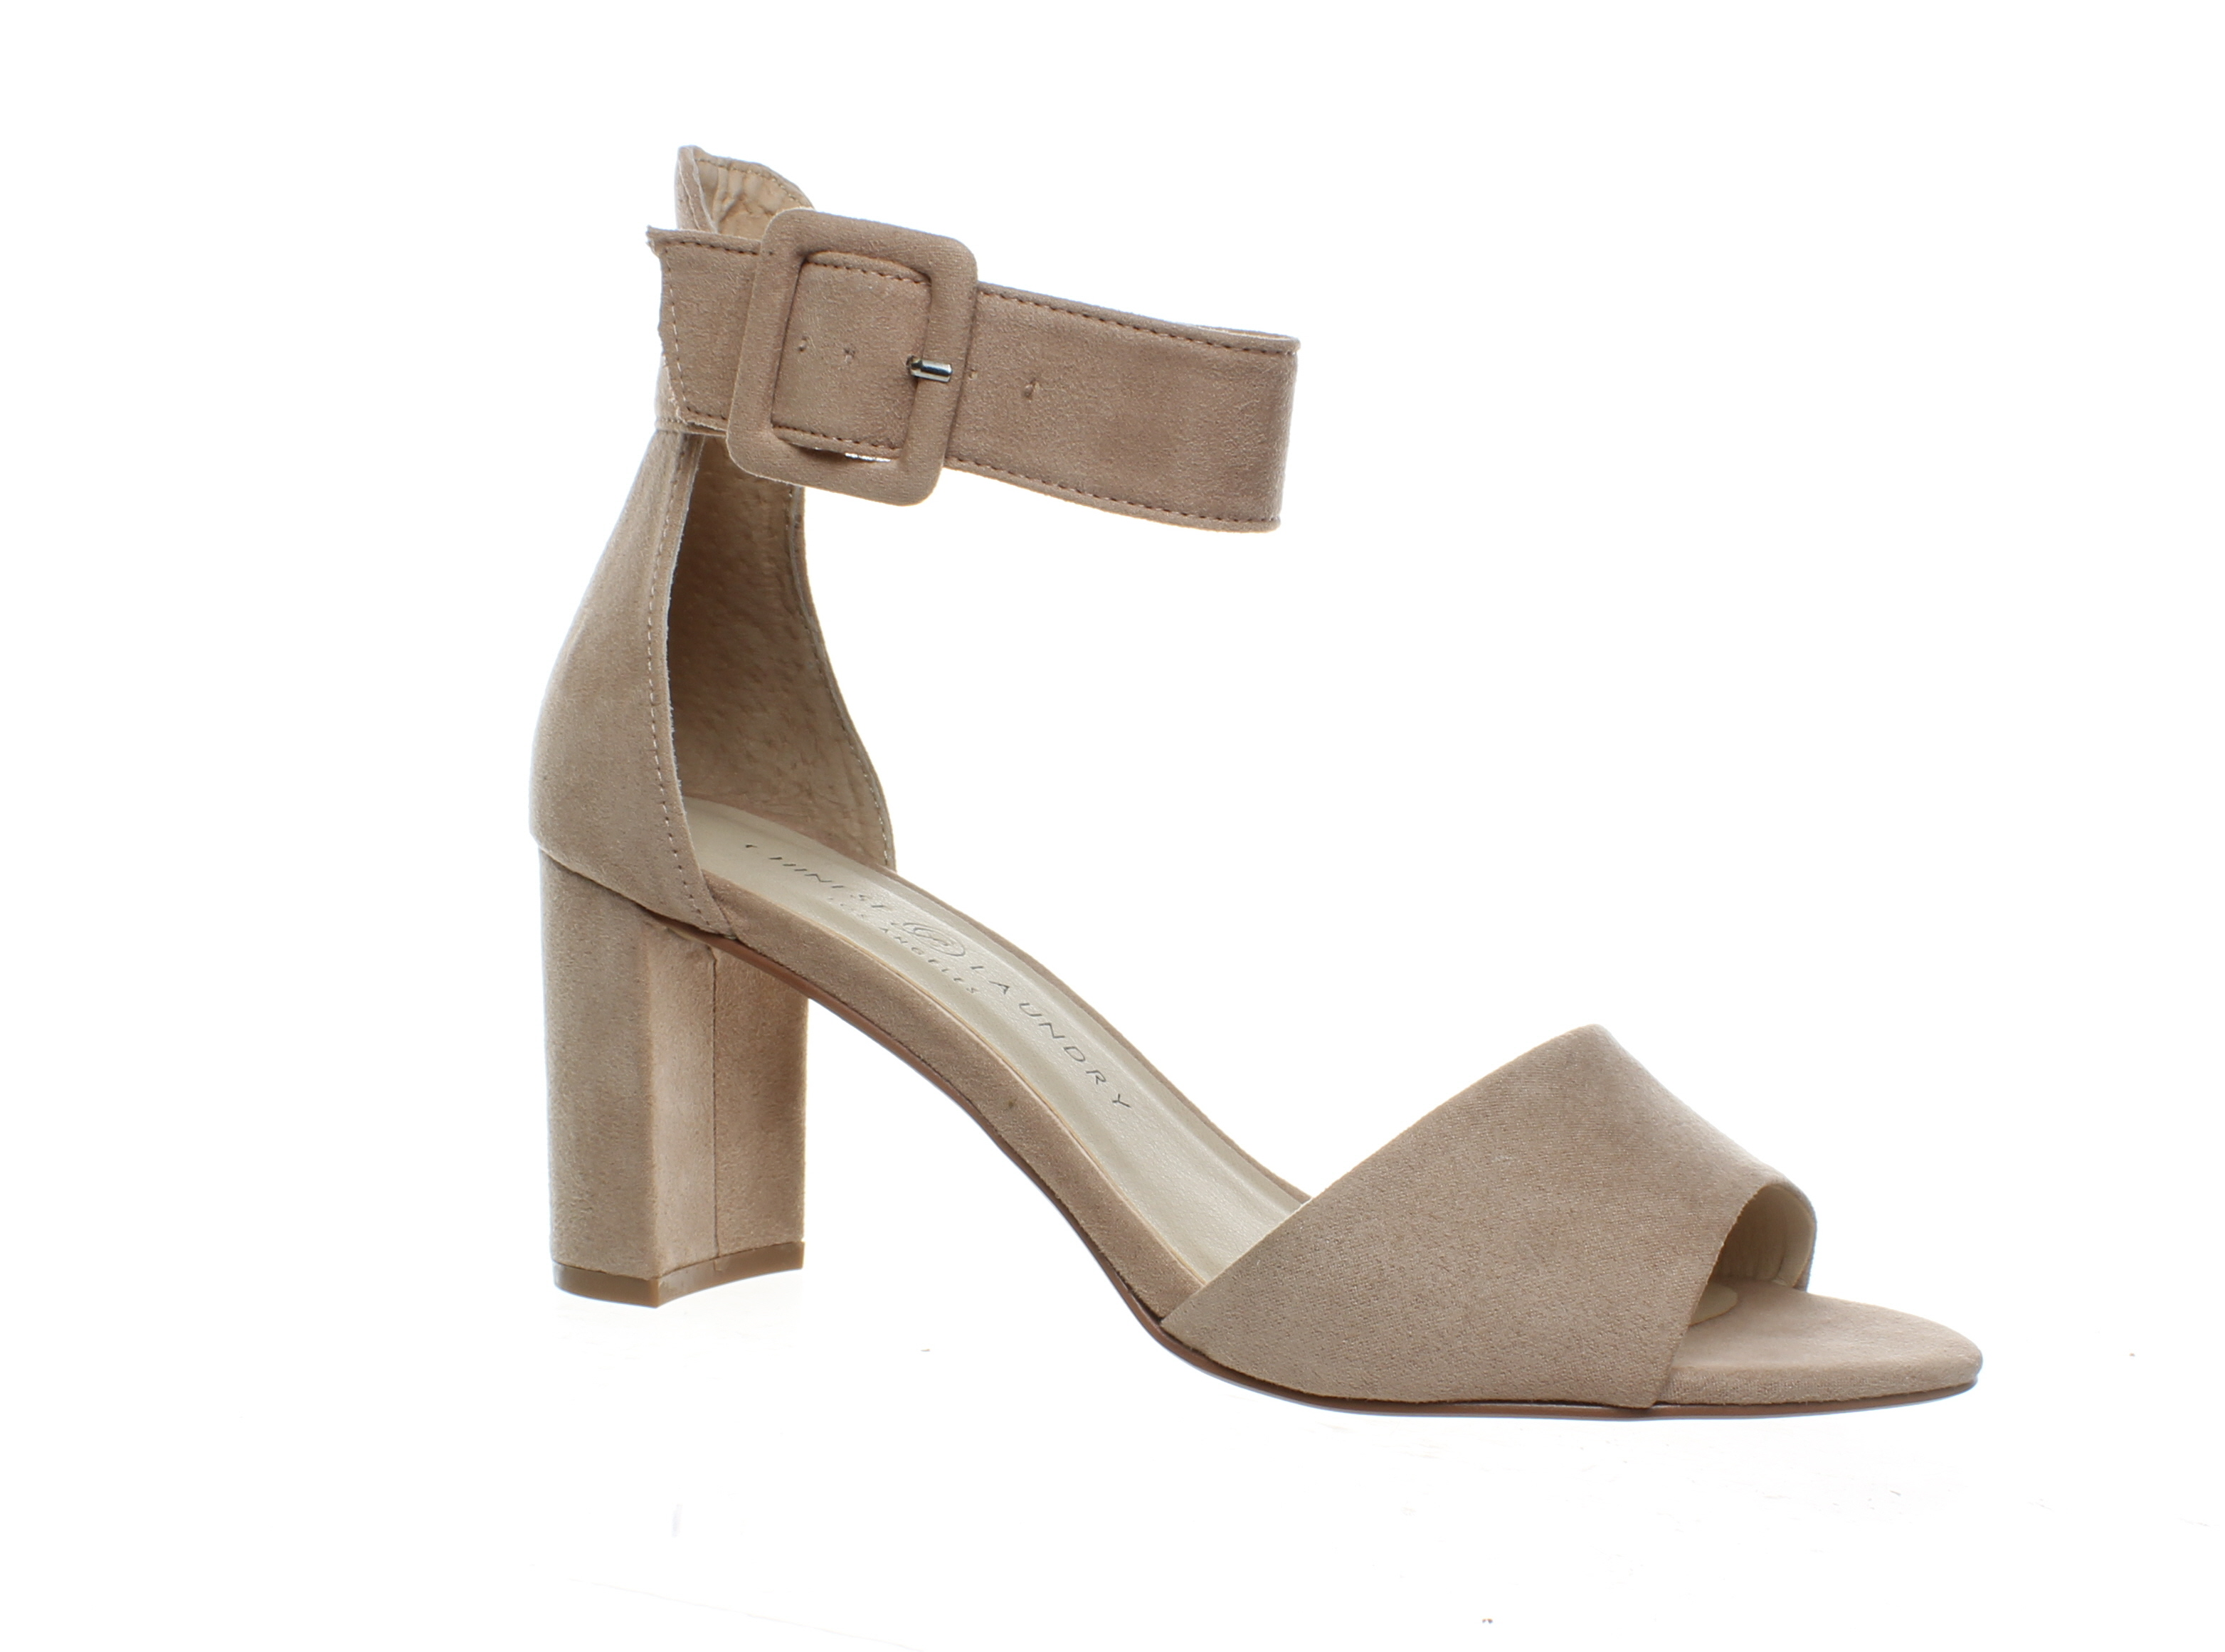 Chinese Laundry Womens Rosetta Dark Nude Suede Ankle Strap